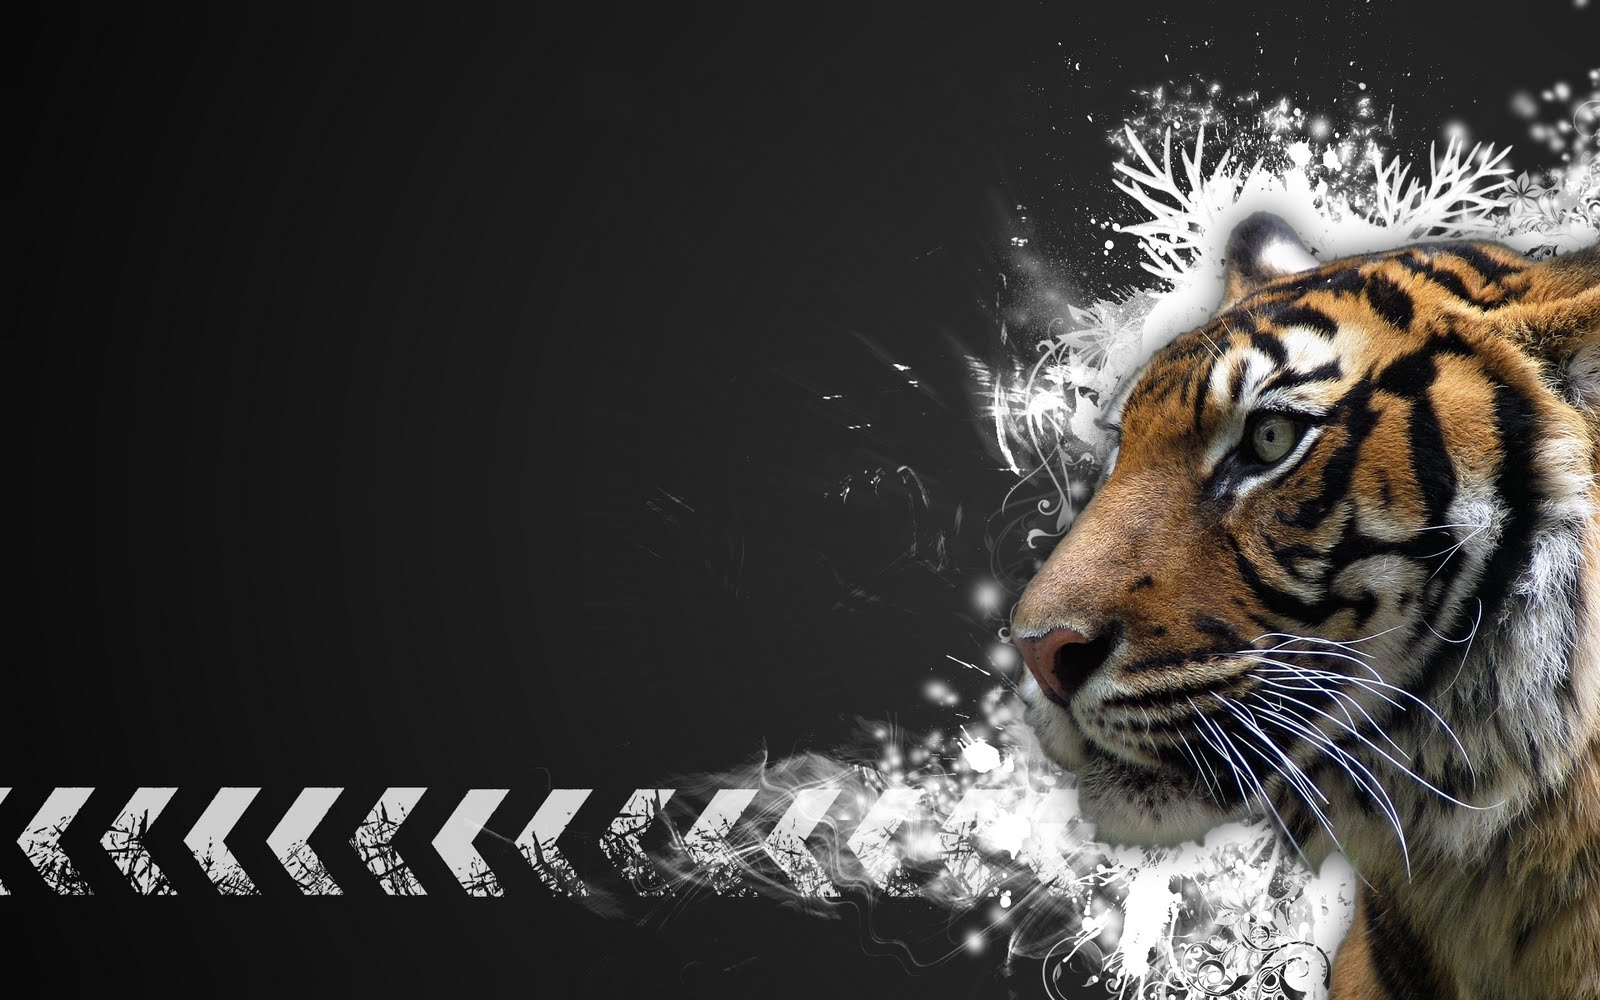 tiger wallpapers hd Tiger Vector Widescreen HD Wallpaper Vektör ve